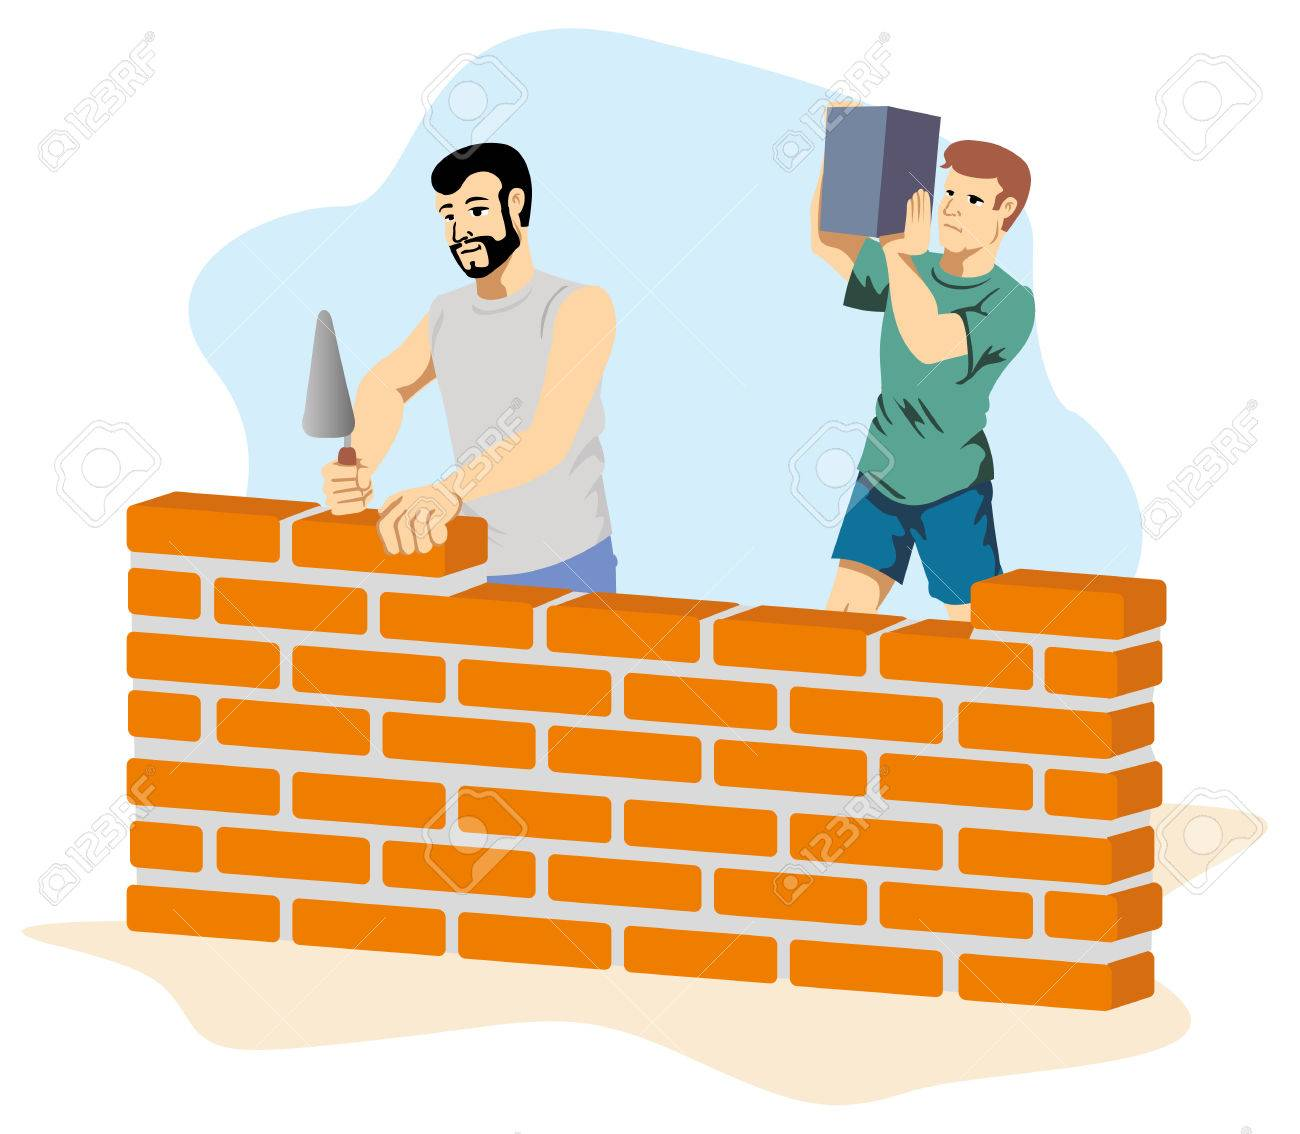 Illustration Depicting People Bricklayers Building A Wall At Construction Site Ideal For Institutional Materials